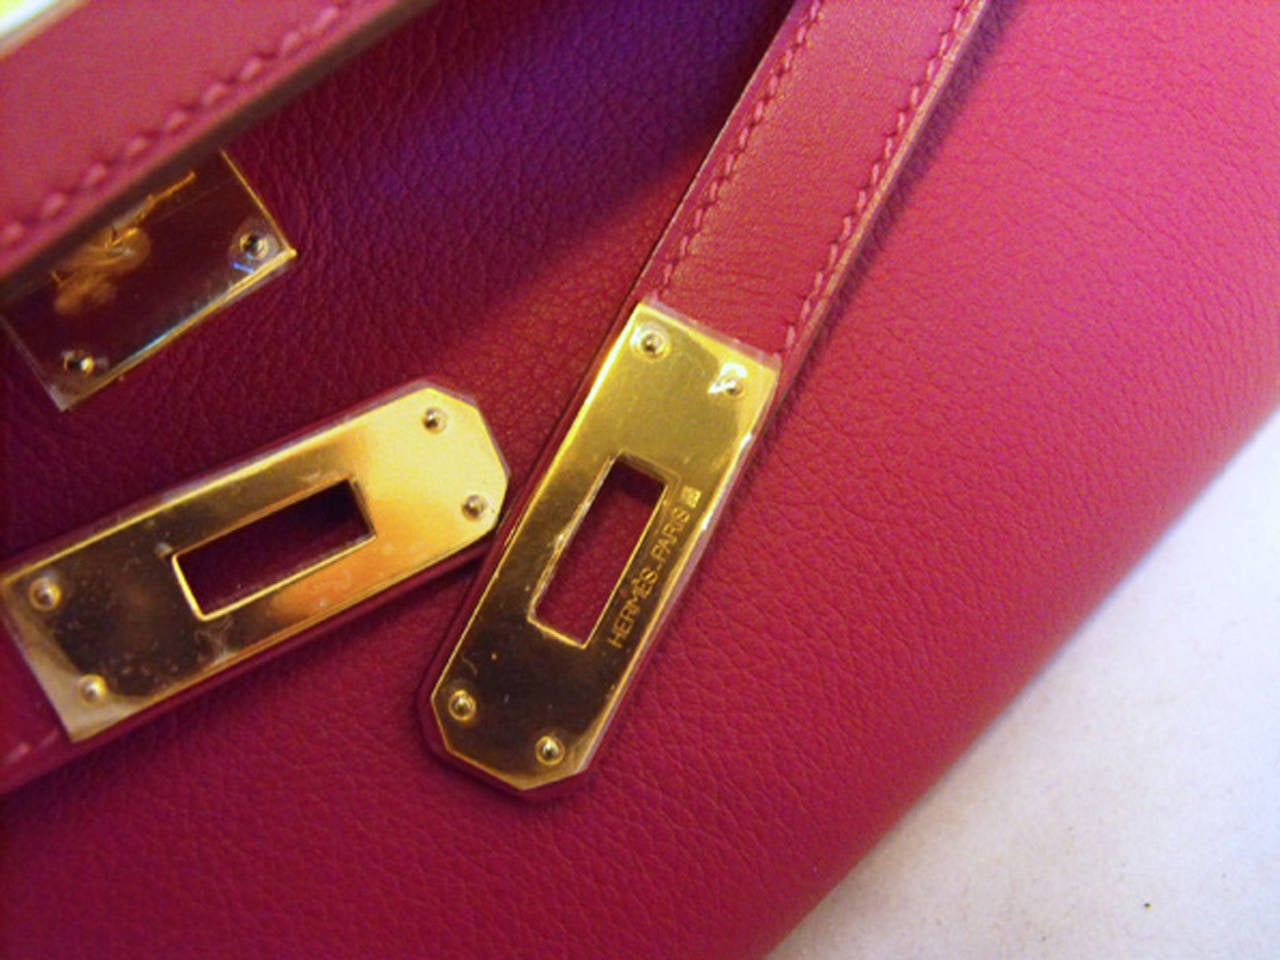 Hermes Fuchsia Swift Leather Kelly Cut Clutch Handbag  For Sale 1